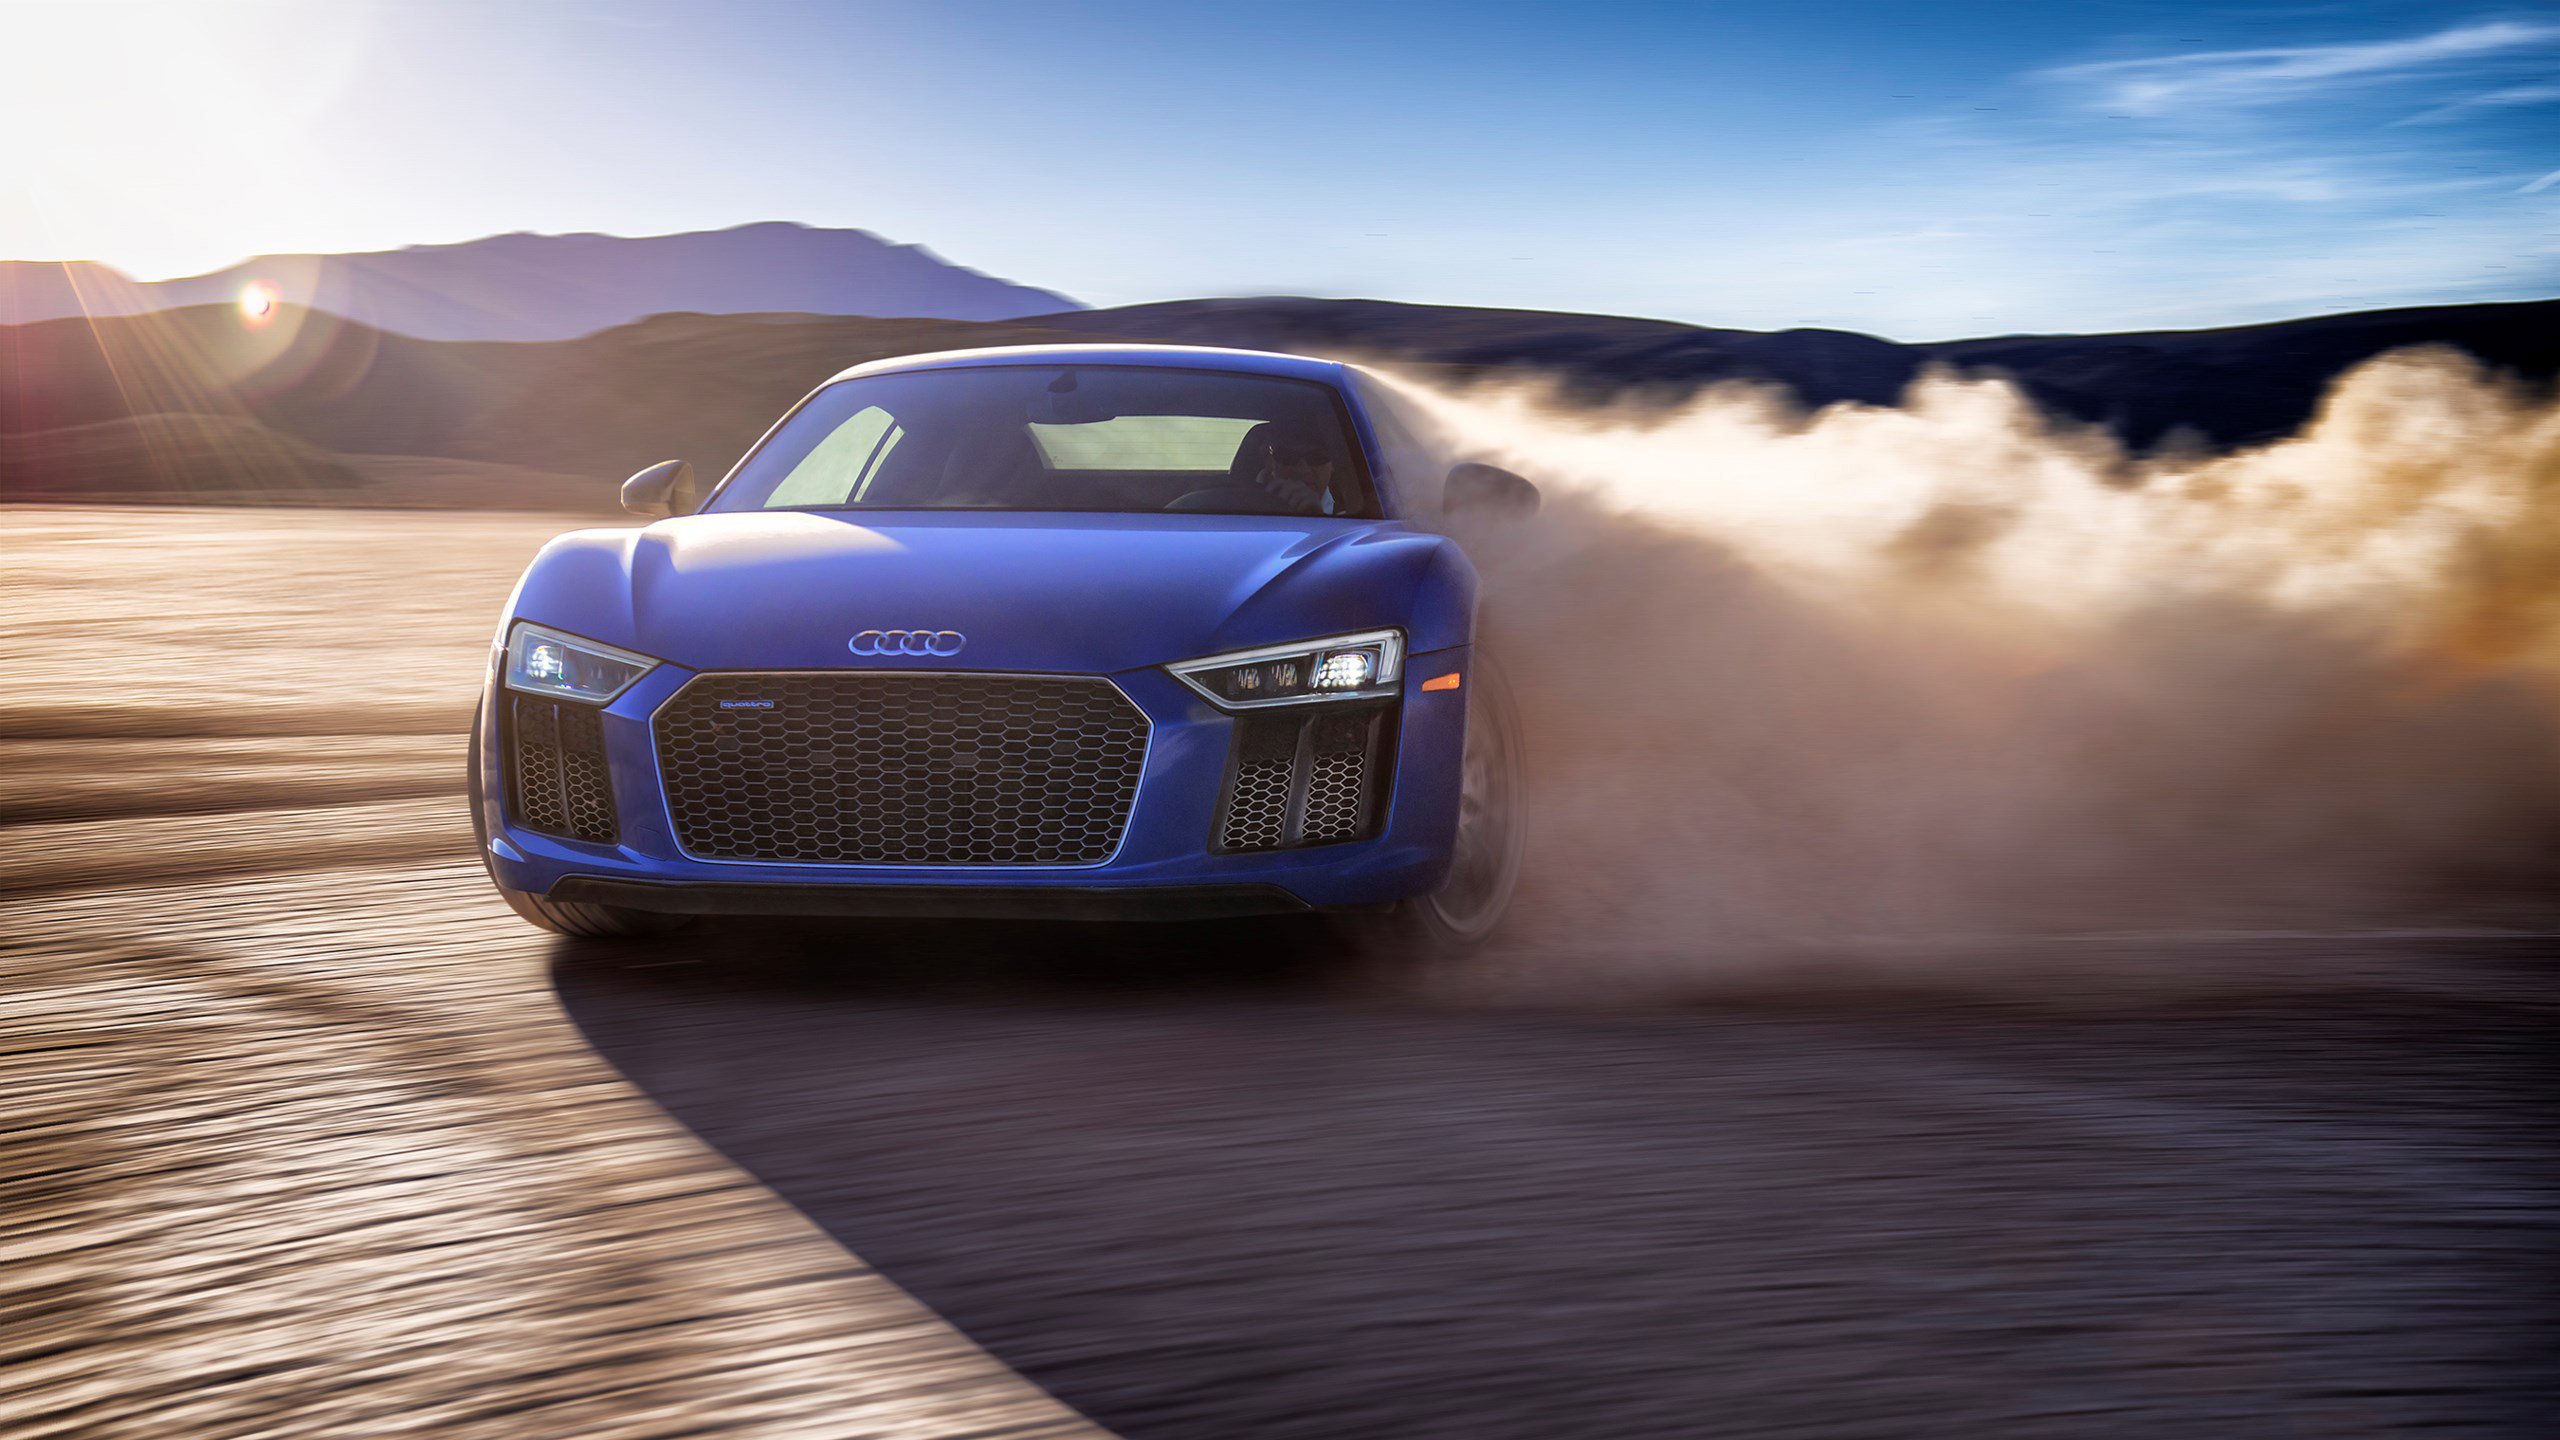 Audi R8 V10 Plus 2019 Wallpaper | HD Car Wallpapers | ID ...